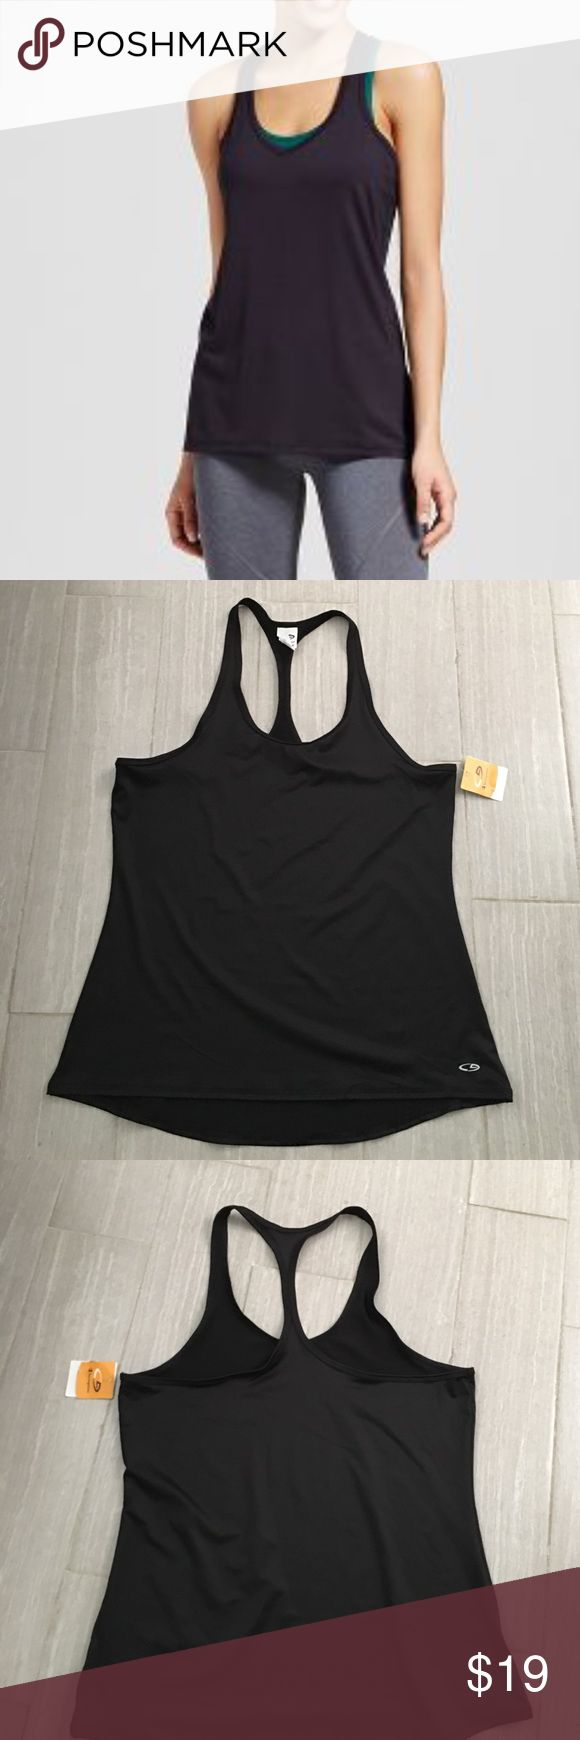 🏹🍉 Champion Duo Dry Black Racerback Tank Top Brand new with tags. Champion stretch duo dry tank top. Low back racerback. Whisks moisture and dries fast! Bundle discount = 20% off 3 or more items 🎉 Champion Tops Tank Tops